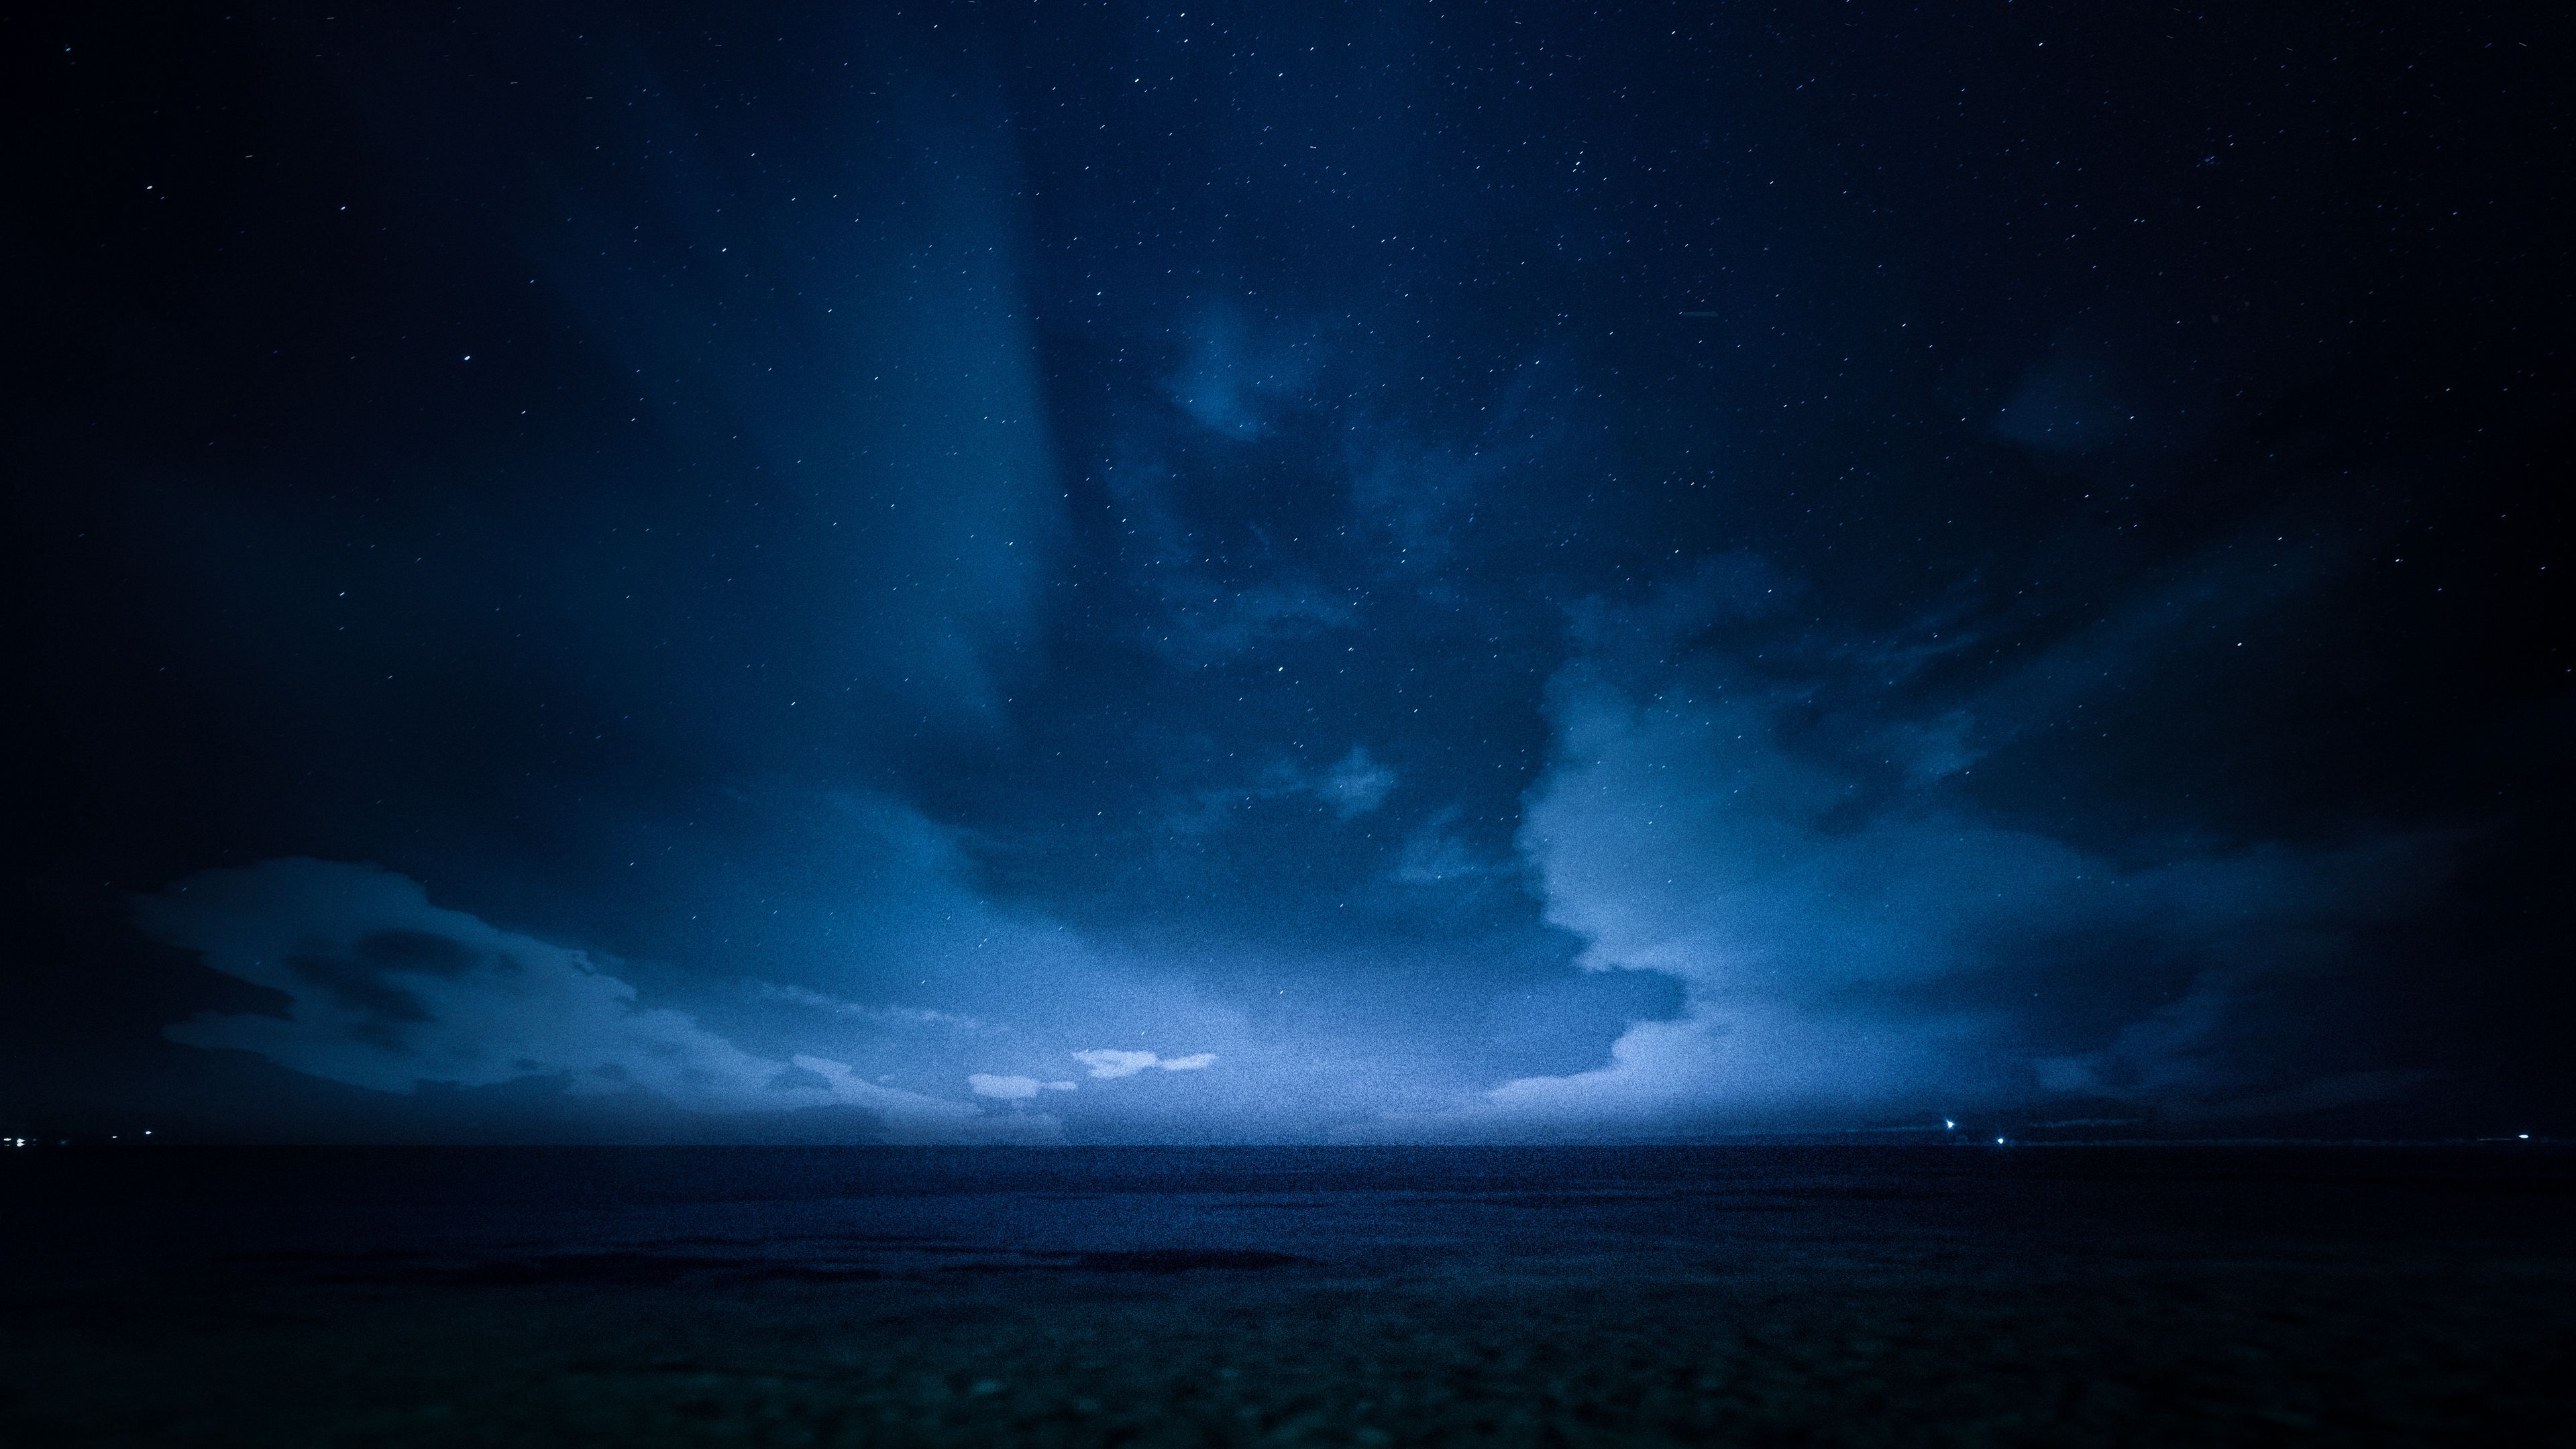 Dark Sky 4k Wallpapers Top Free Dark Sky 4k Backgrounds Wallpaperaccess